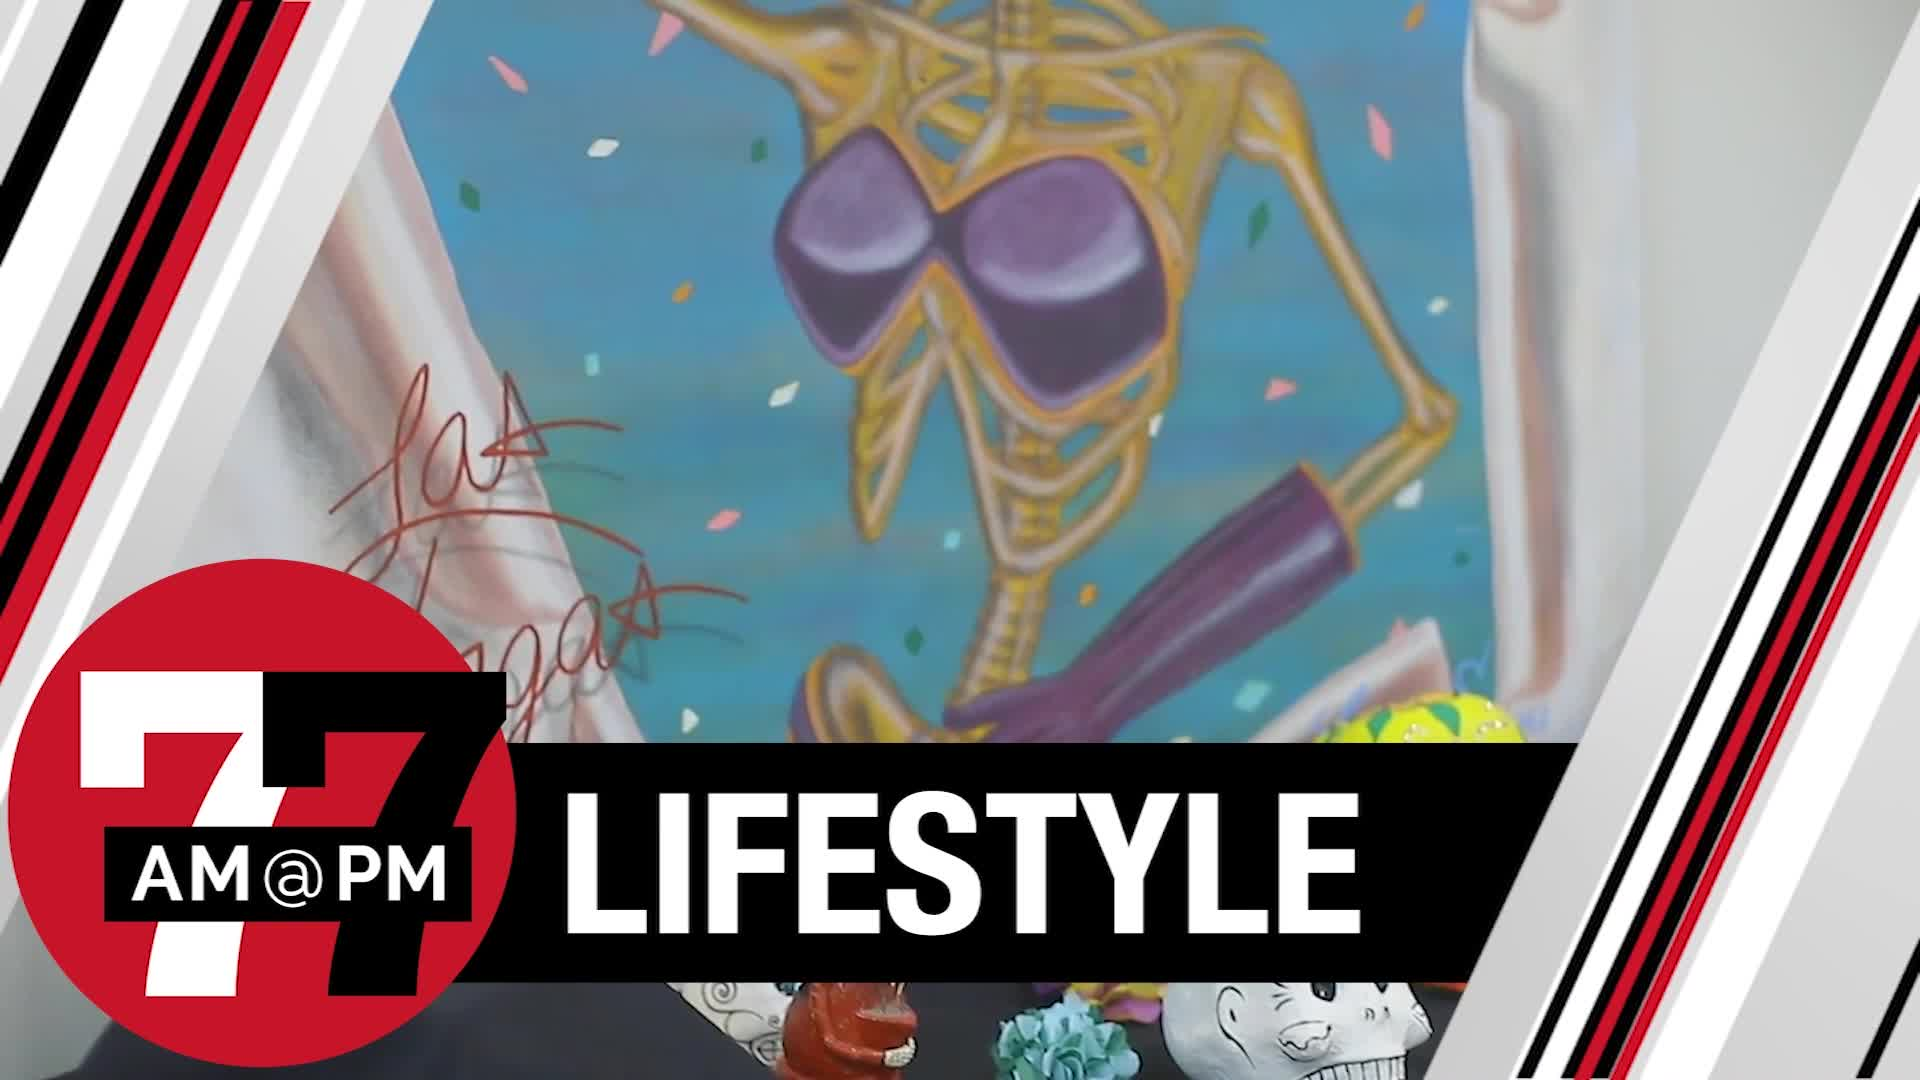 7@7PM Life in Death Festival